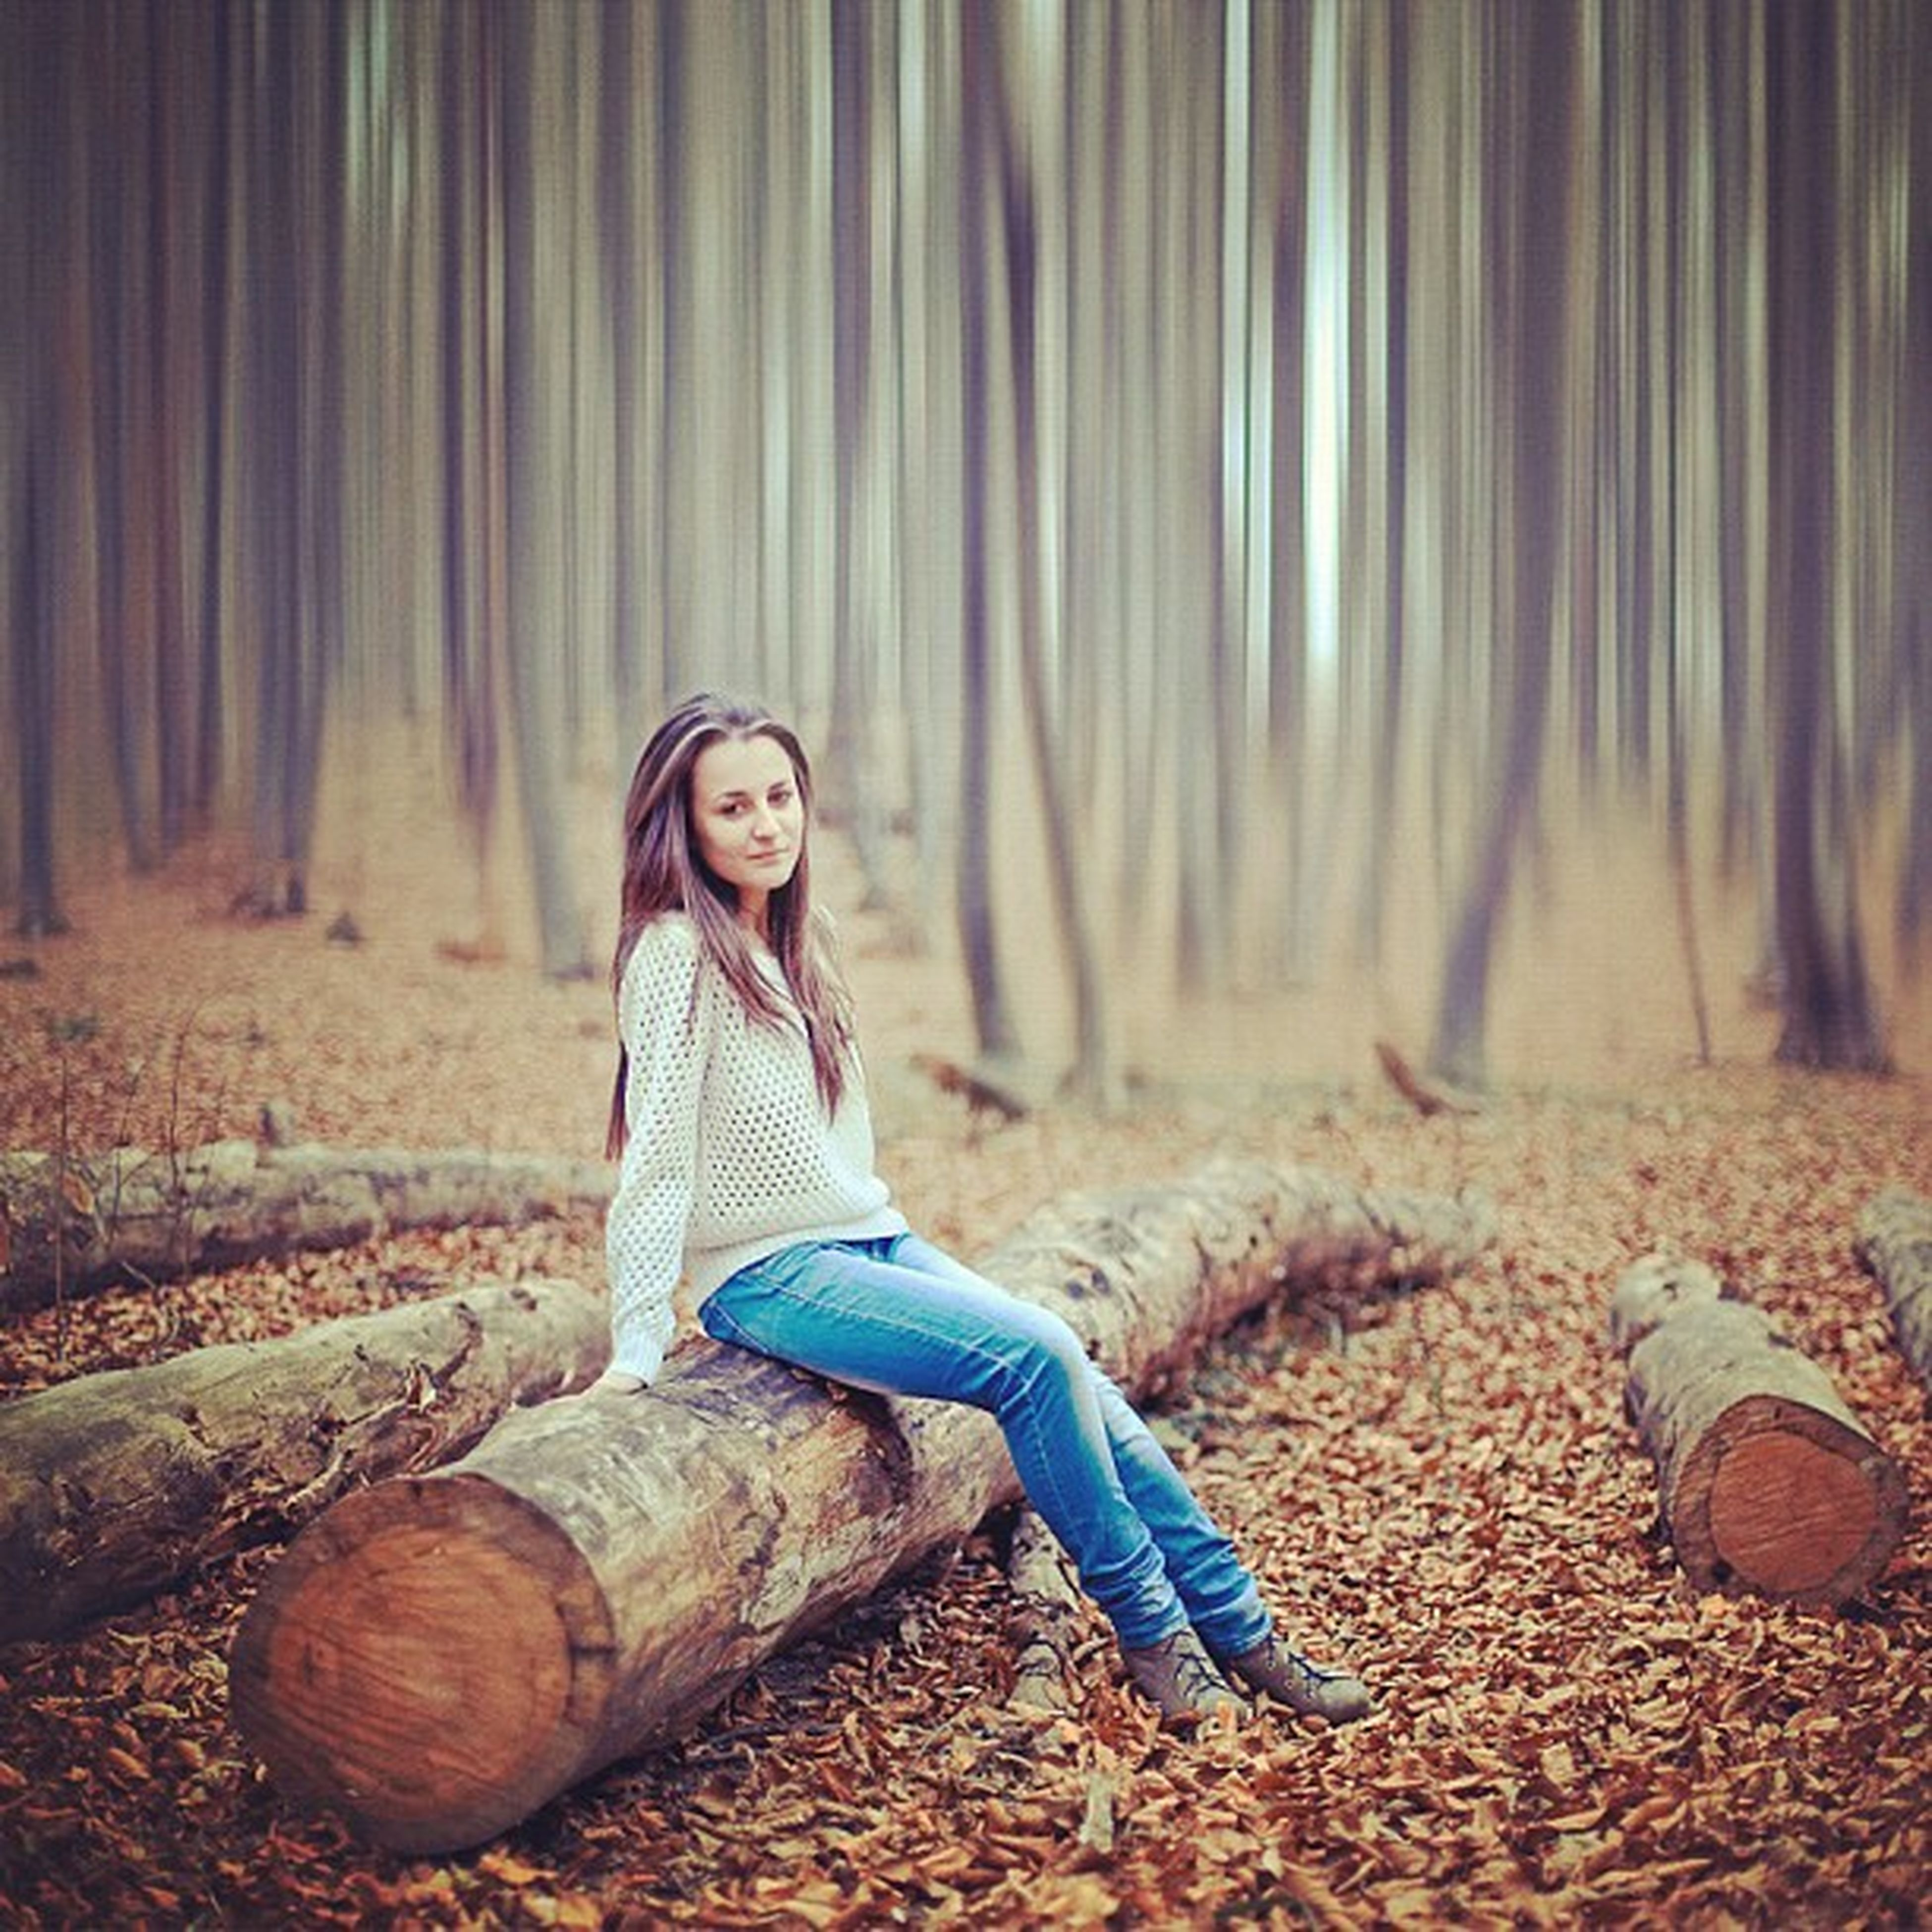 full length, tree, casual clothing, lifestyles, sitting, leisure activity, front view, forest, person, field, relaxation, shoe, day, childhood, standing, nature, outdoors, looking at camera